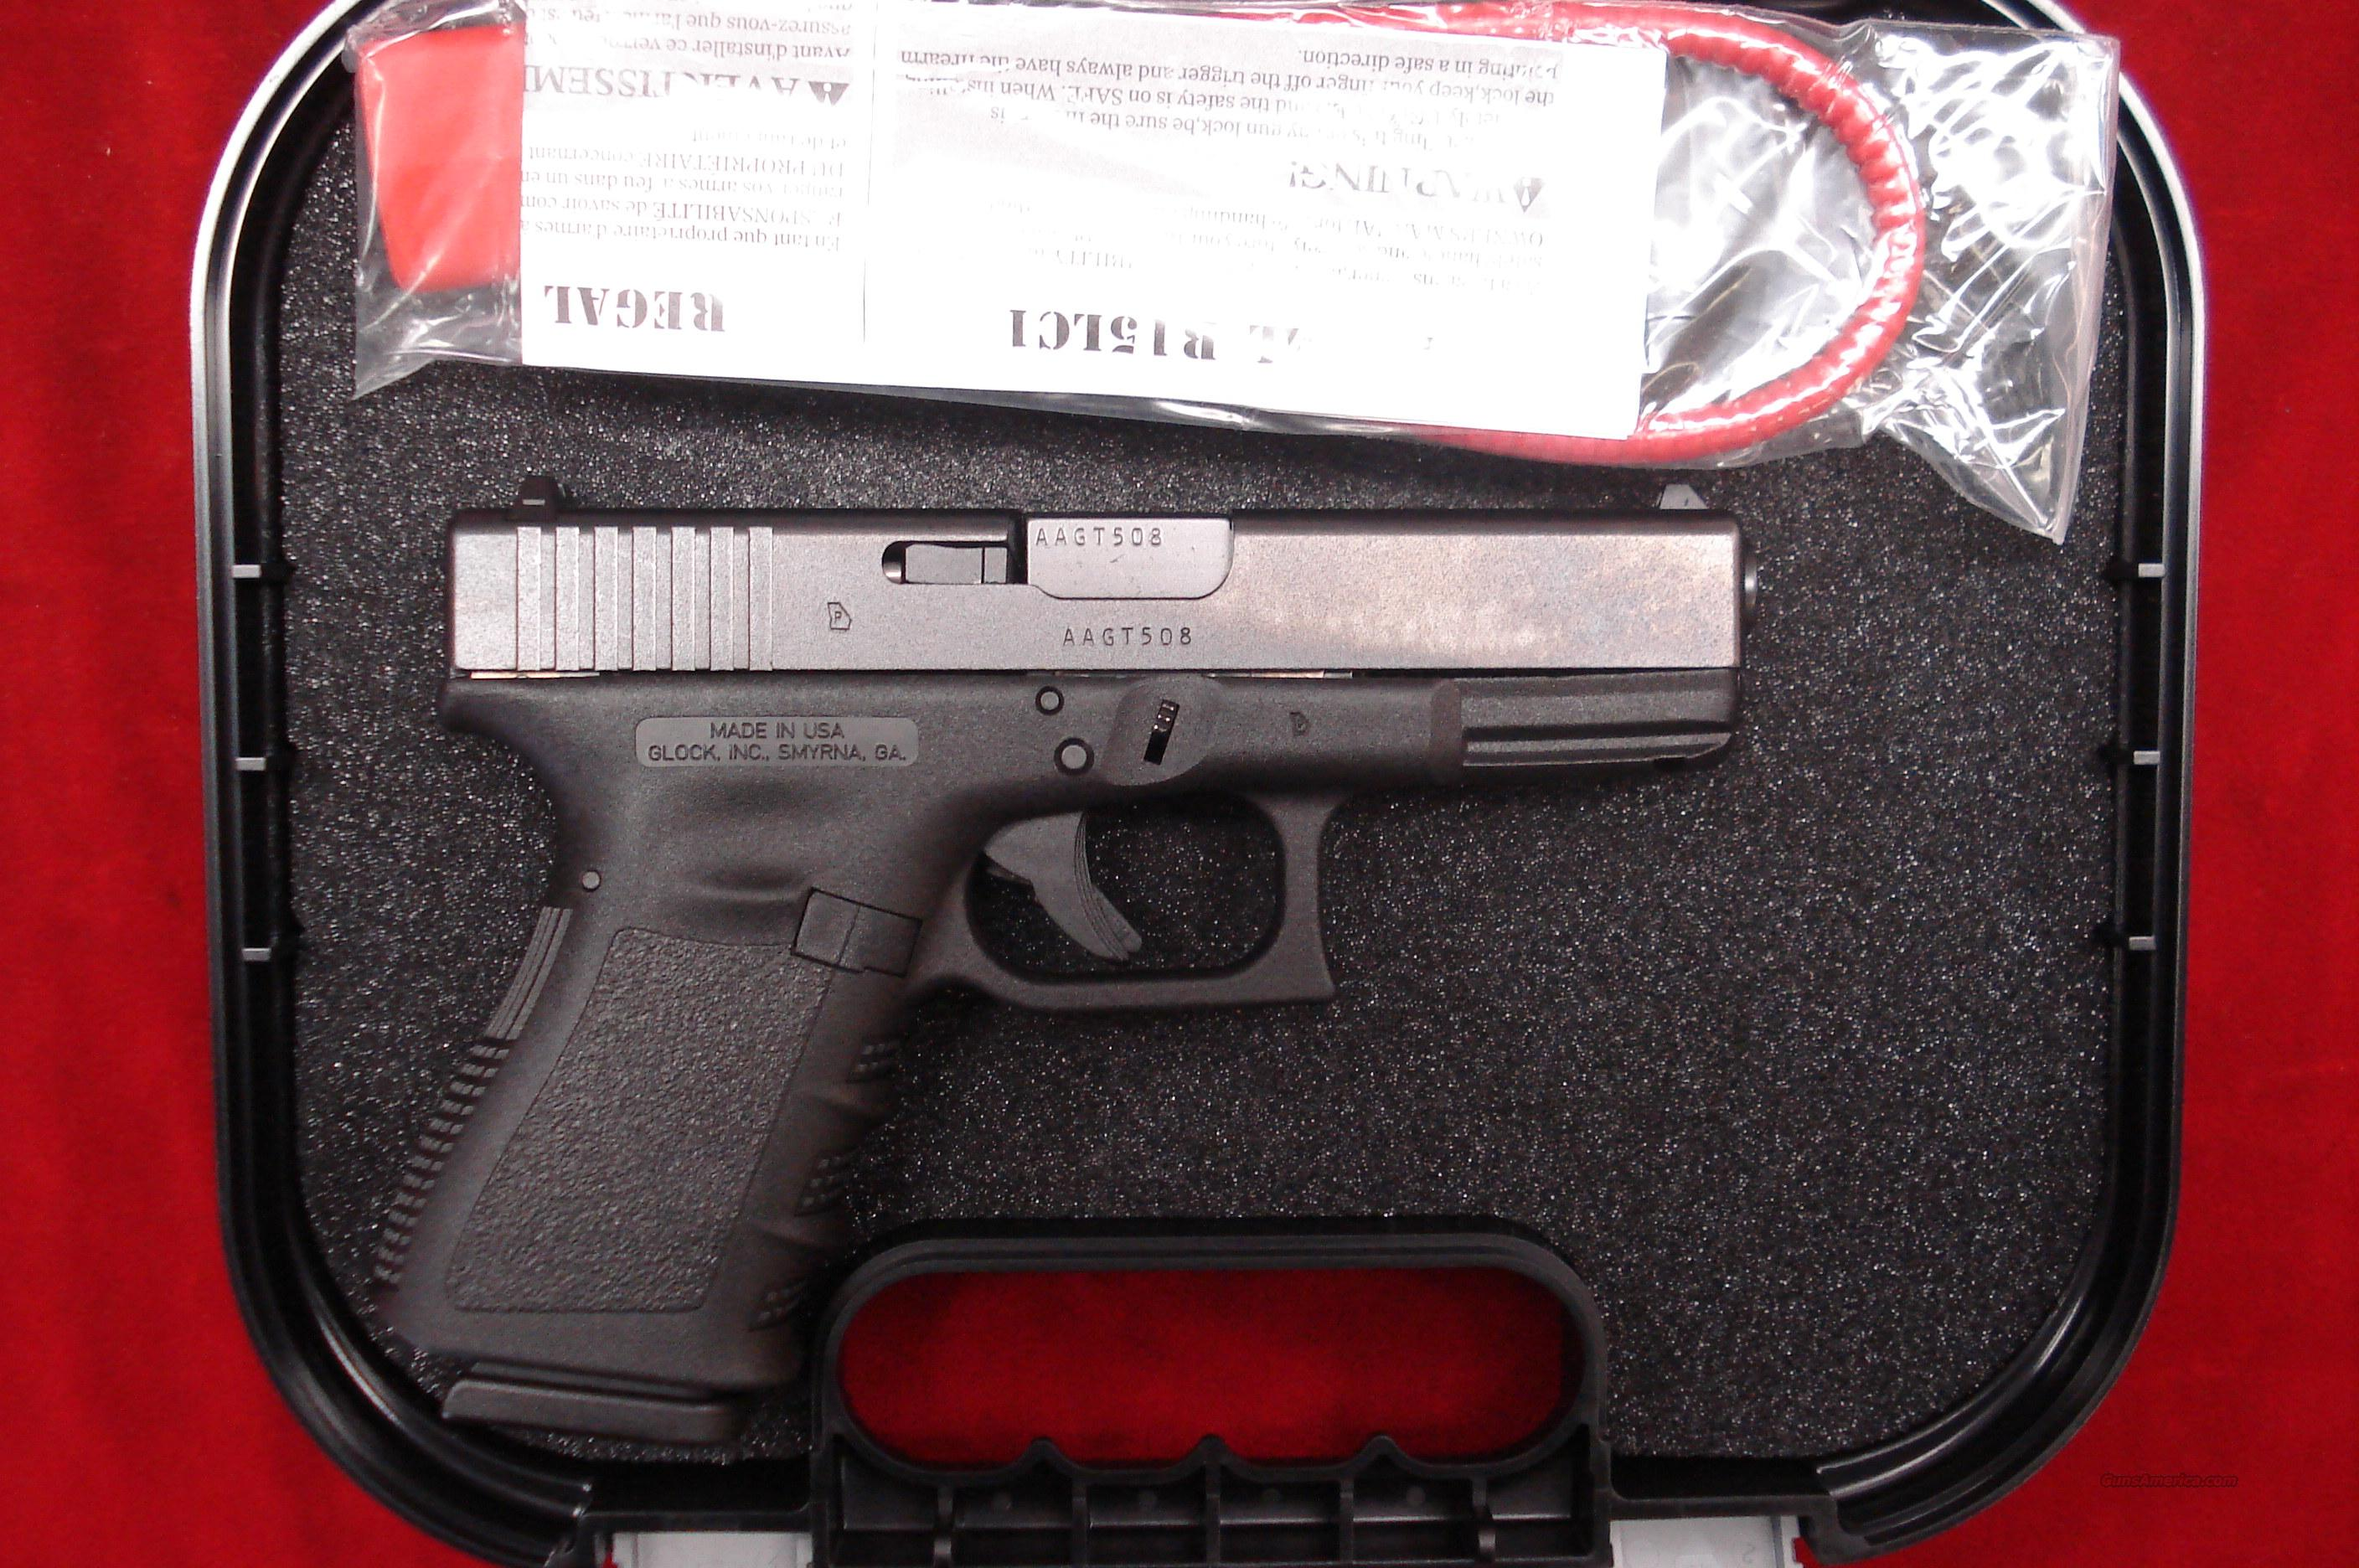 GLOCK USA MODEL 19 GEN 3 9MM W/HIGH CAPACITY MAGAZINES NEW  Guns > Pistols > Glock Pistols > 19